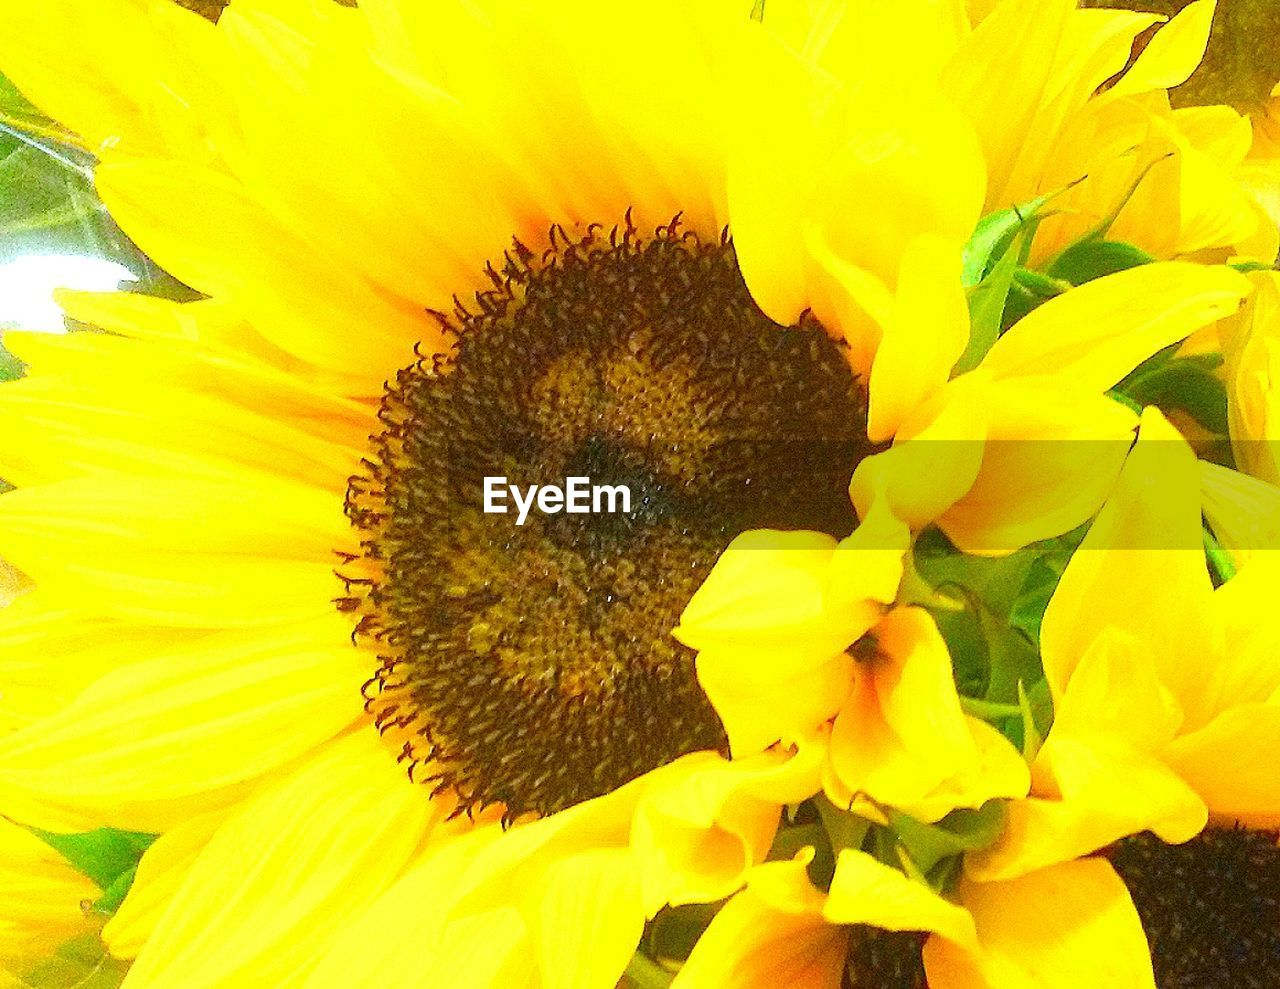 flower, yellow, petal, fragility, freshness, beauty in nature, flower head, nature, growth, pollen, sunflower, close-up, no people, plant, outdoors, stamen, day, blooming, full frame, springtime, backgrounds, animal themes